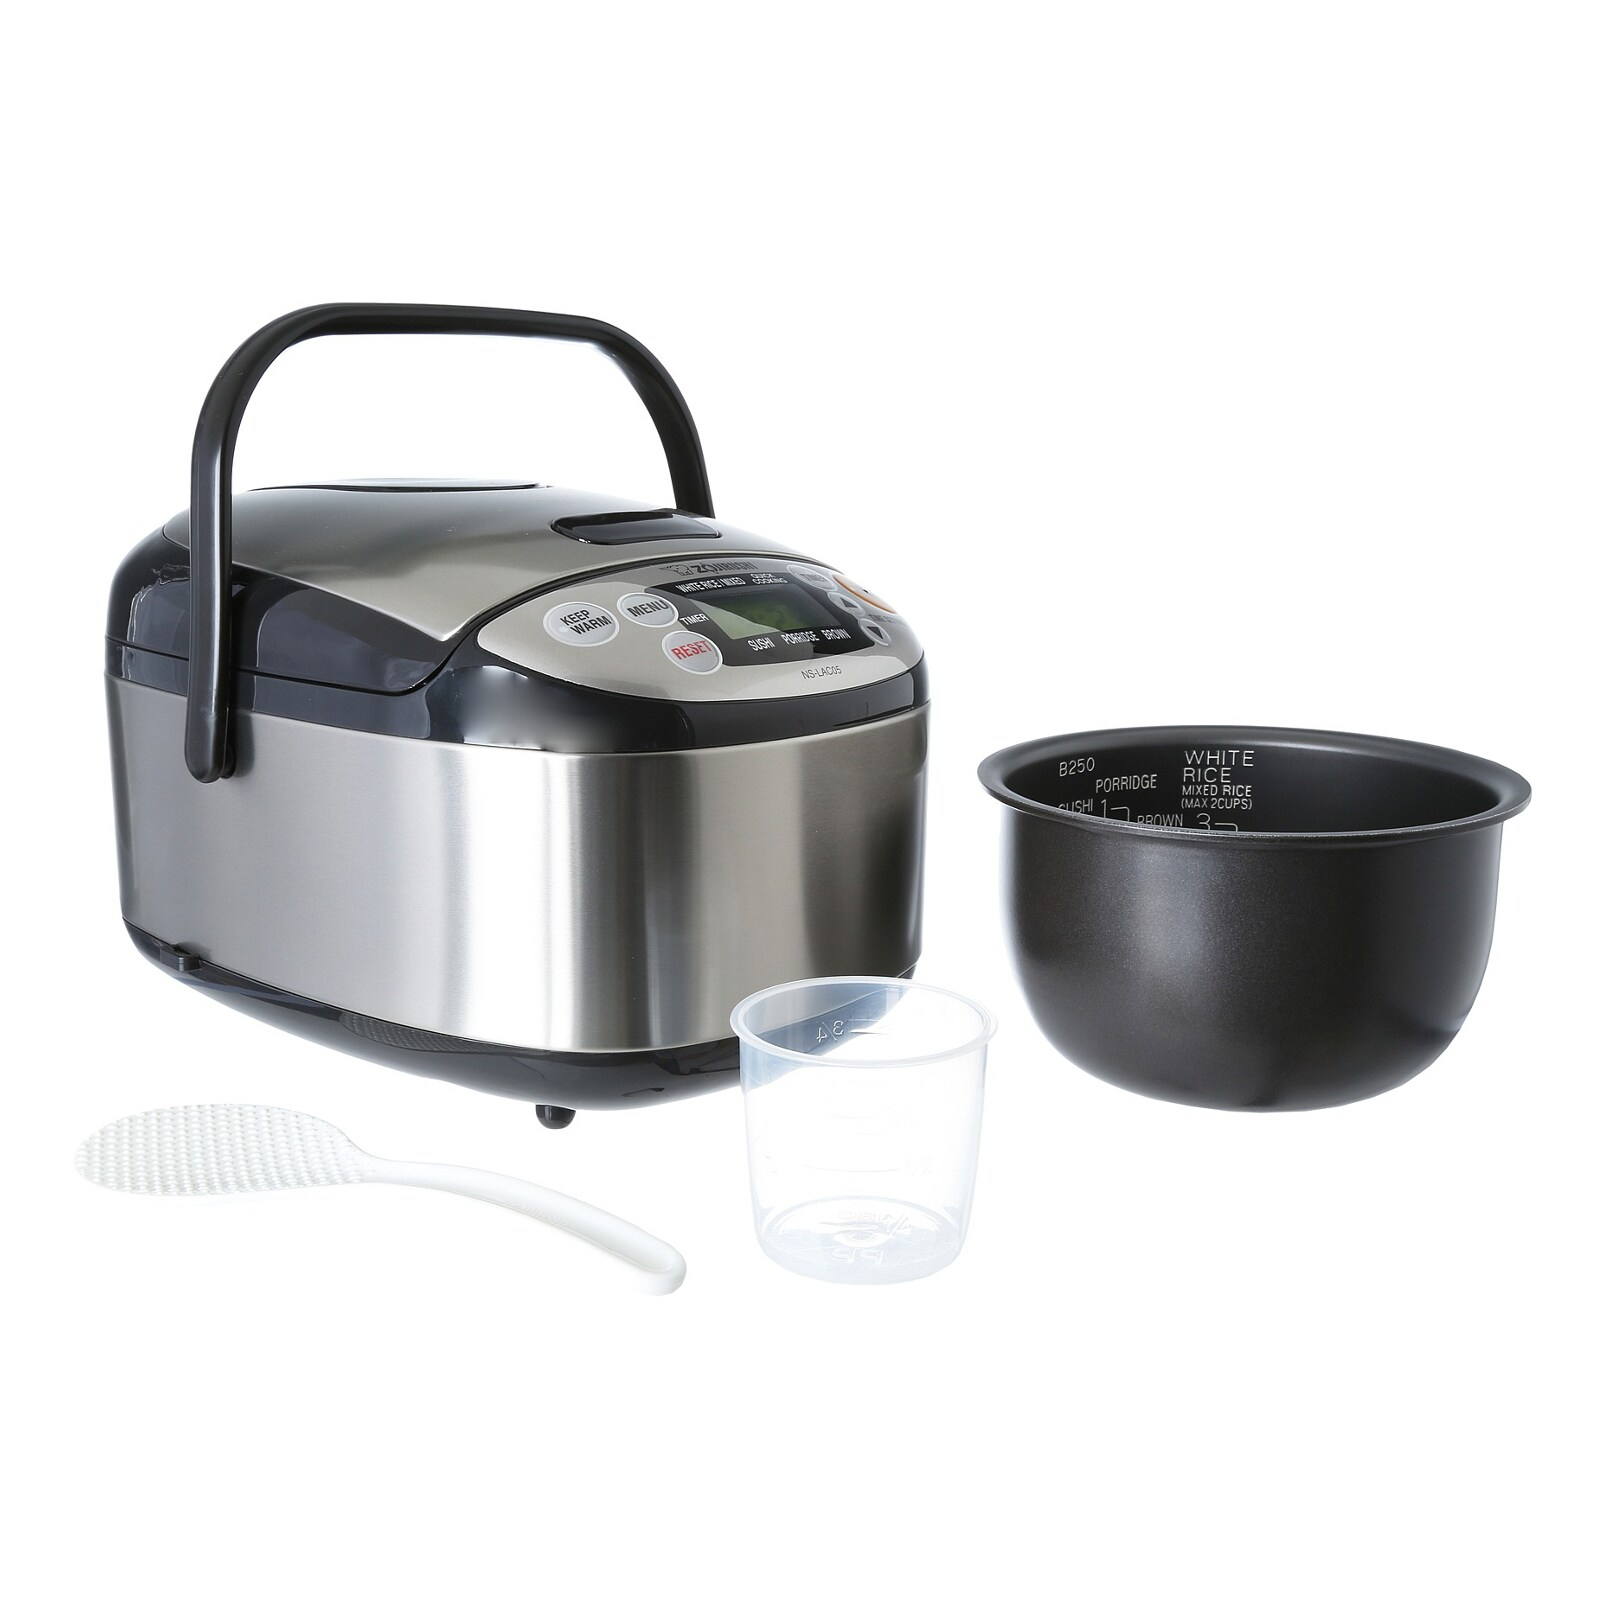 ff5499226a0 Shop Zojirushi NS-LAC05XT Micom 3-cup Rice Cooker and Warmer Black    Stainless - Free Shipping Today - Overstock - 8896539